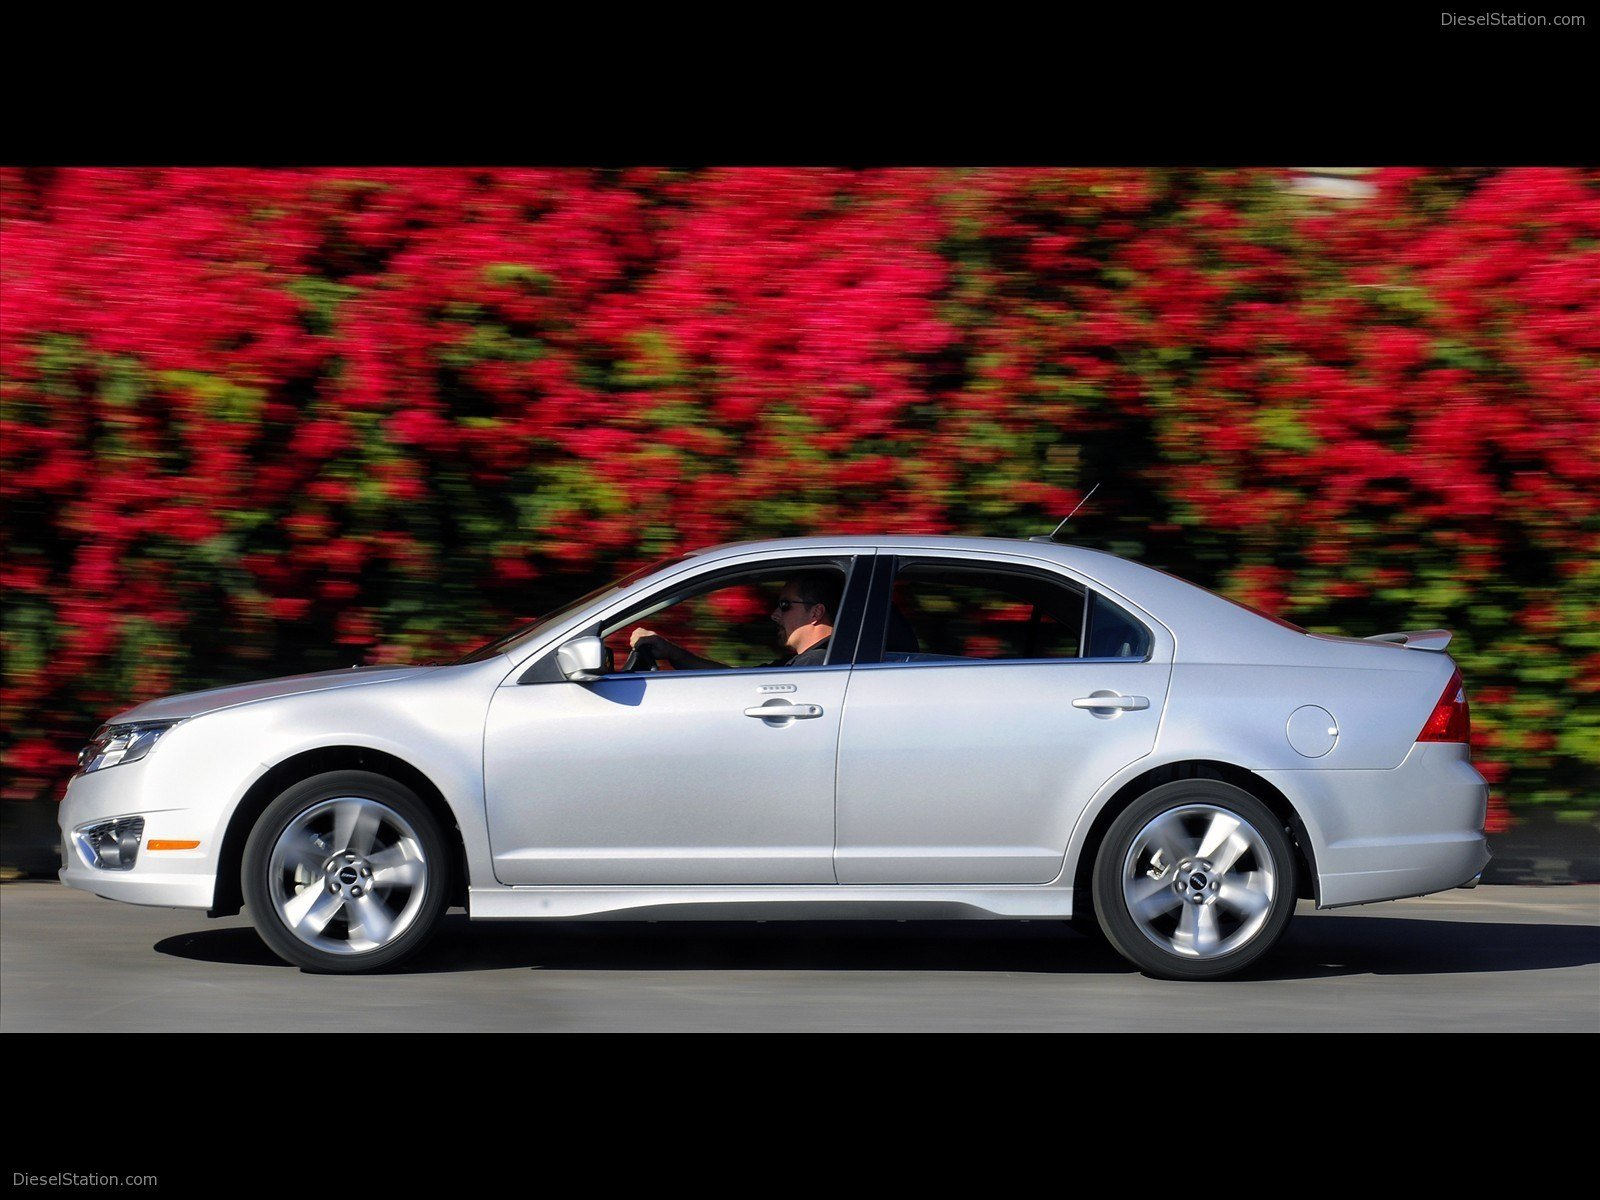 Latest 2010 Ford Fusion Exotic Car Image 04 Of 26 Diesel Station Free Download